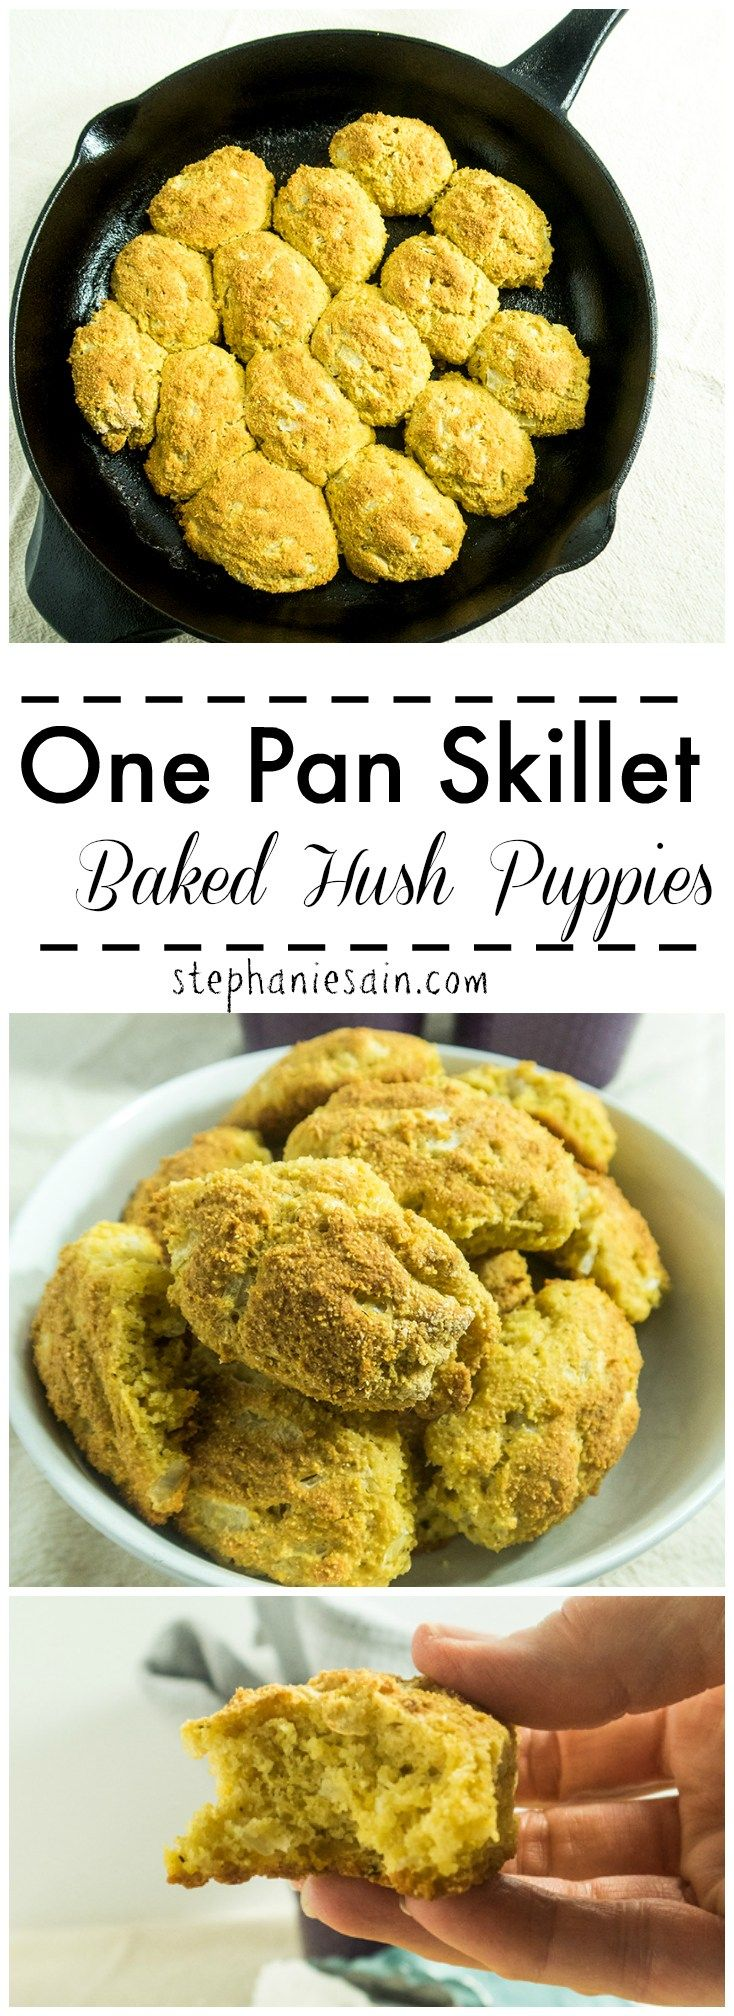 One Pan Skillet Baked Hush Puppies are a healthier version of the traditional hush puppies. They go perfect as a side with almost anything or even great as a snack. Gluten Free & Vegetarian.